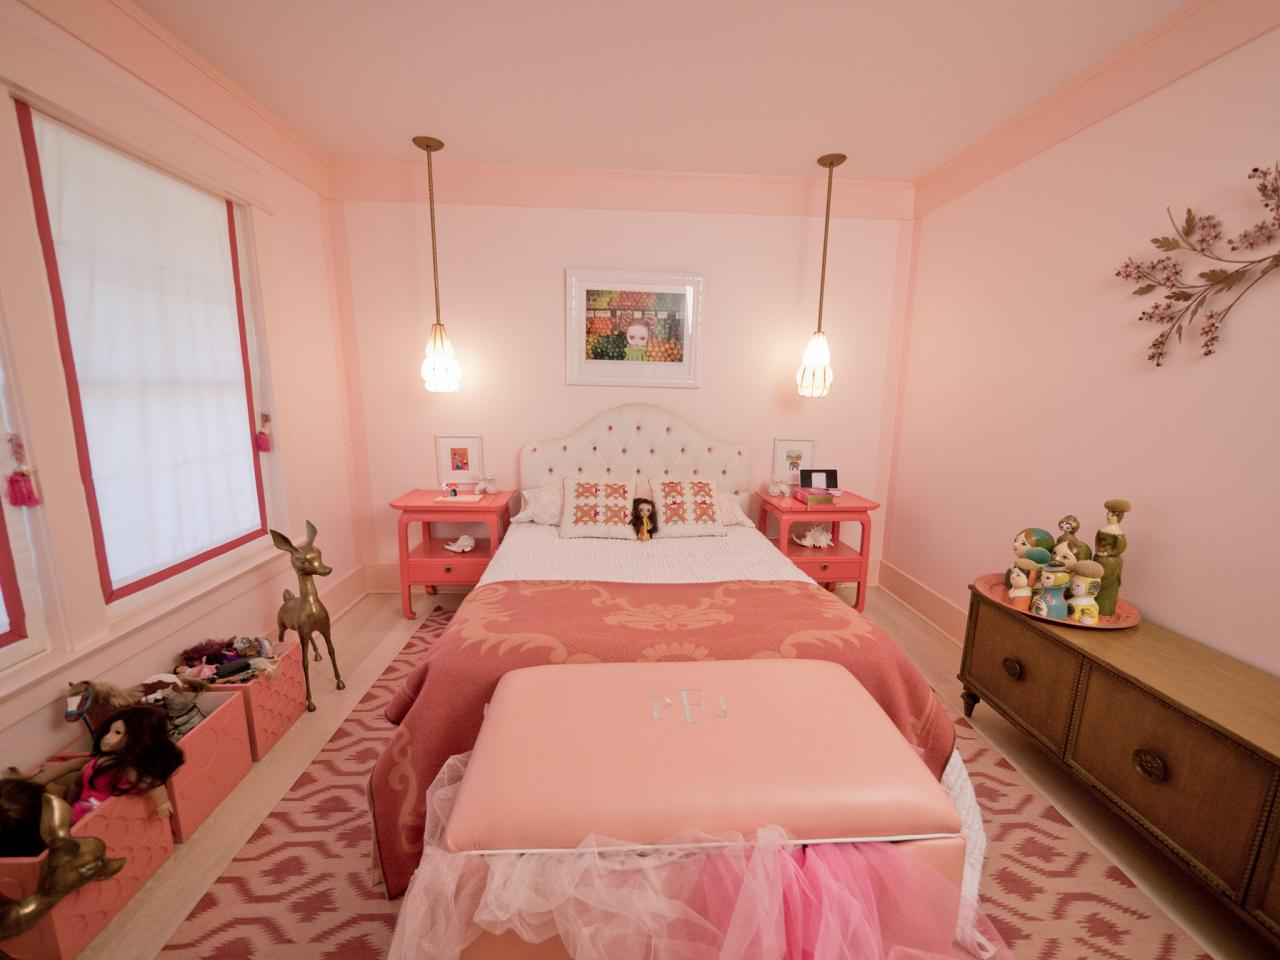 Wall paint colors for girls bedroom - Girly Retro Inspired Pink Bedroom